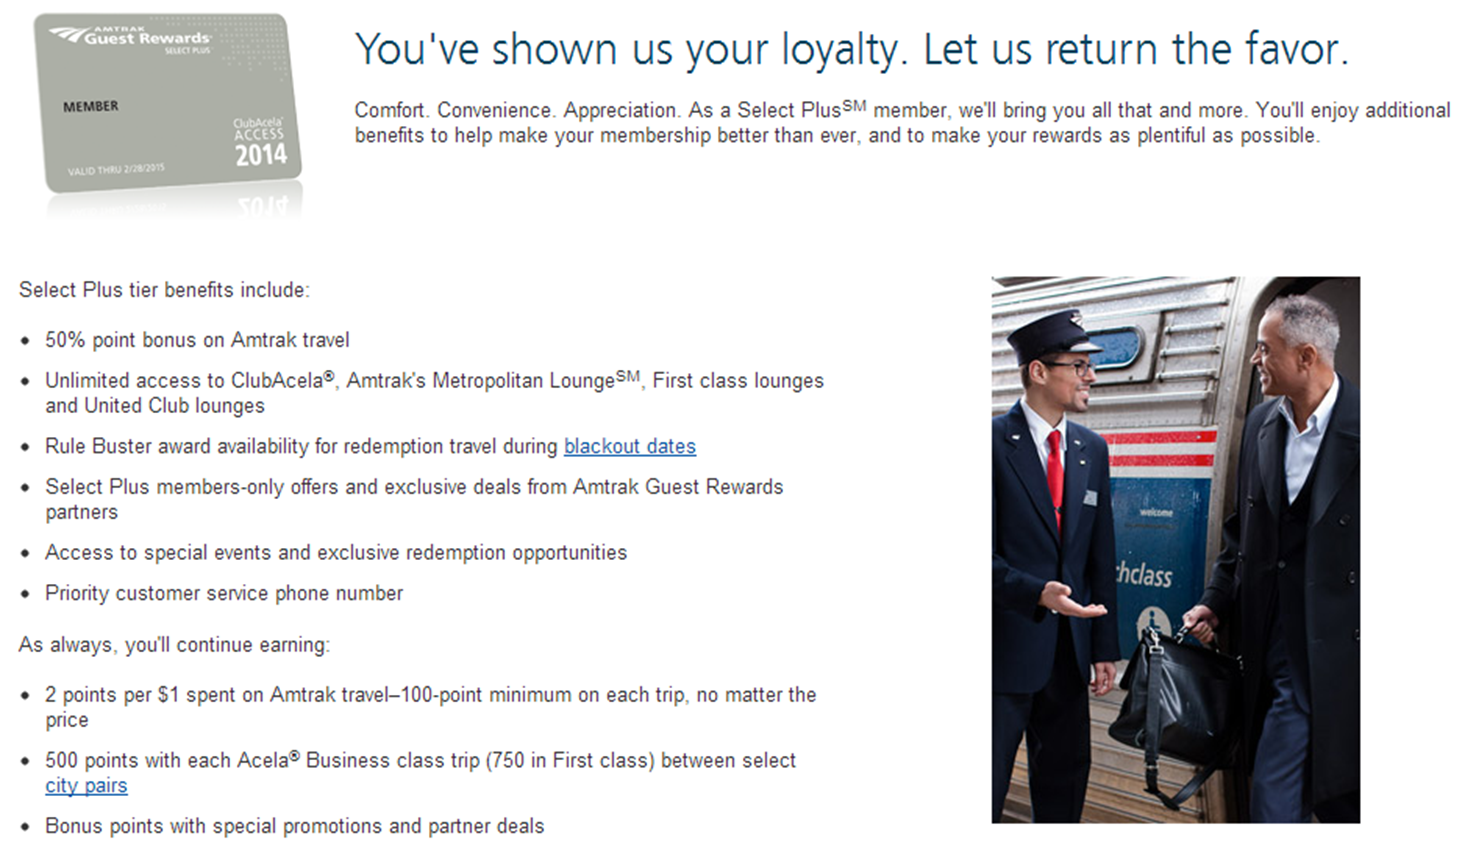 Flying vinny leveraging amtrak select plus elite status for united one of the perks of the select plus membership is that amtrak has a partnership with united so that amtrak frequent travelers can access the 45 united club colourmoves